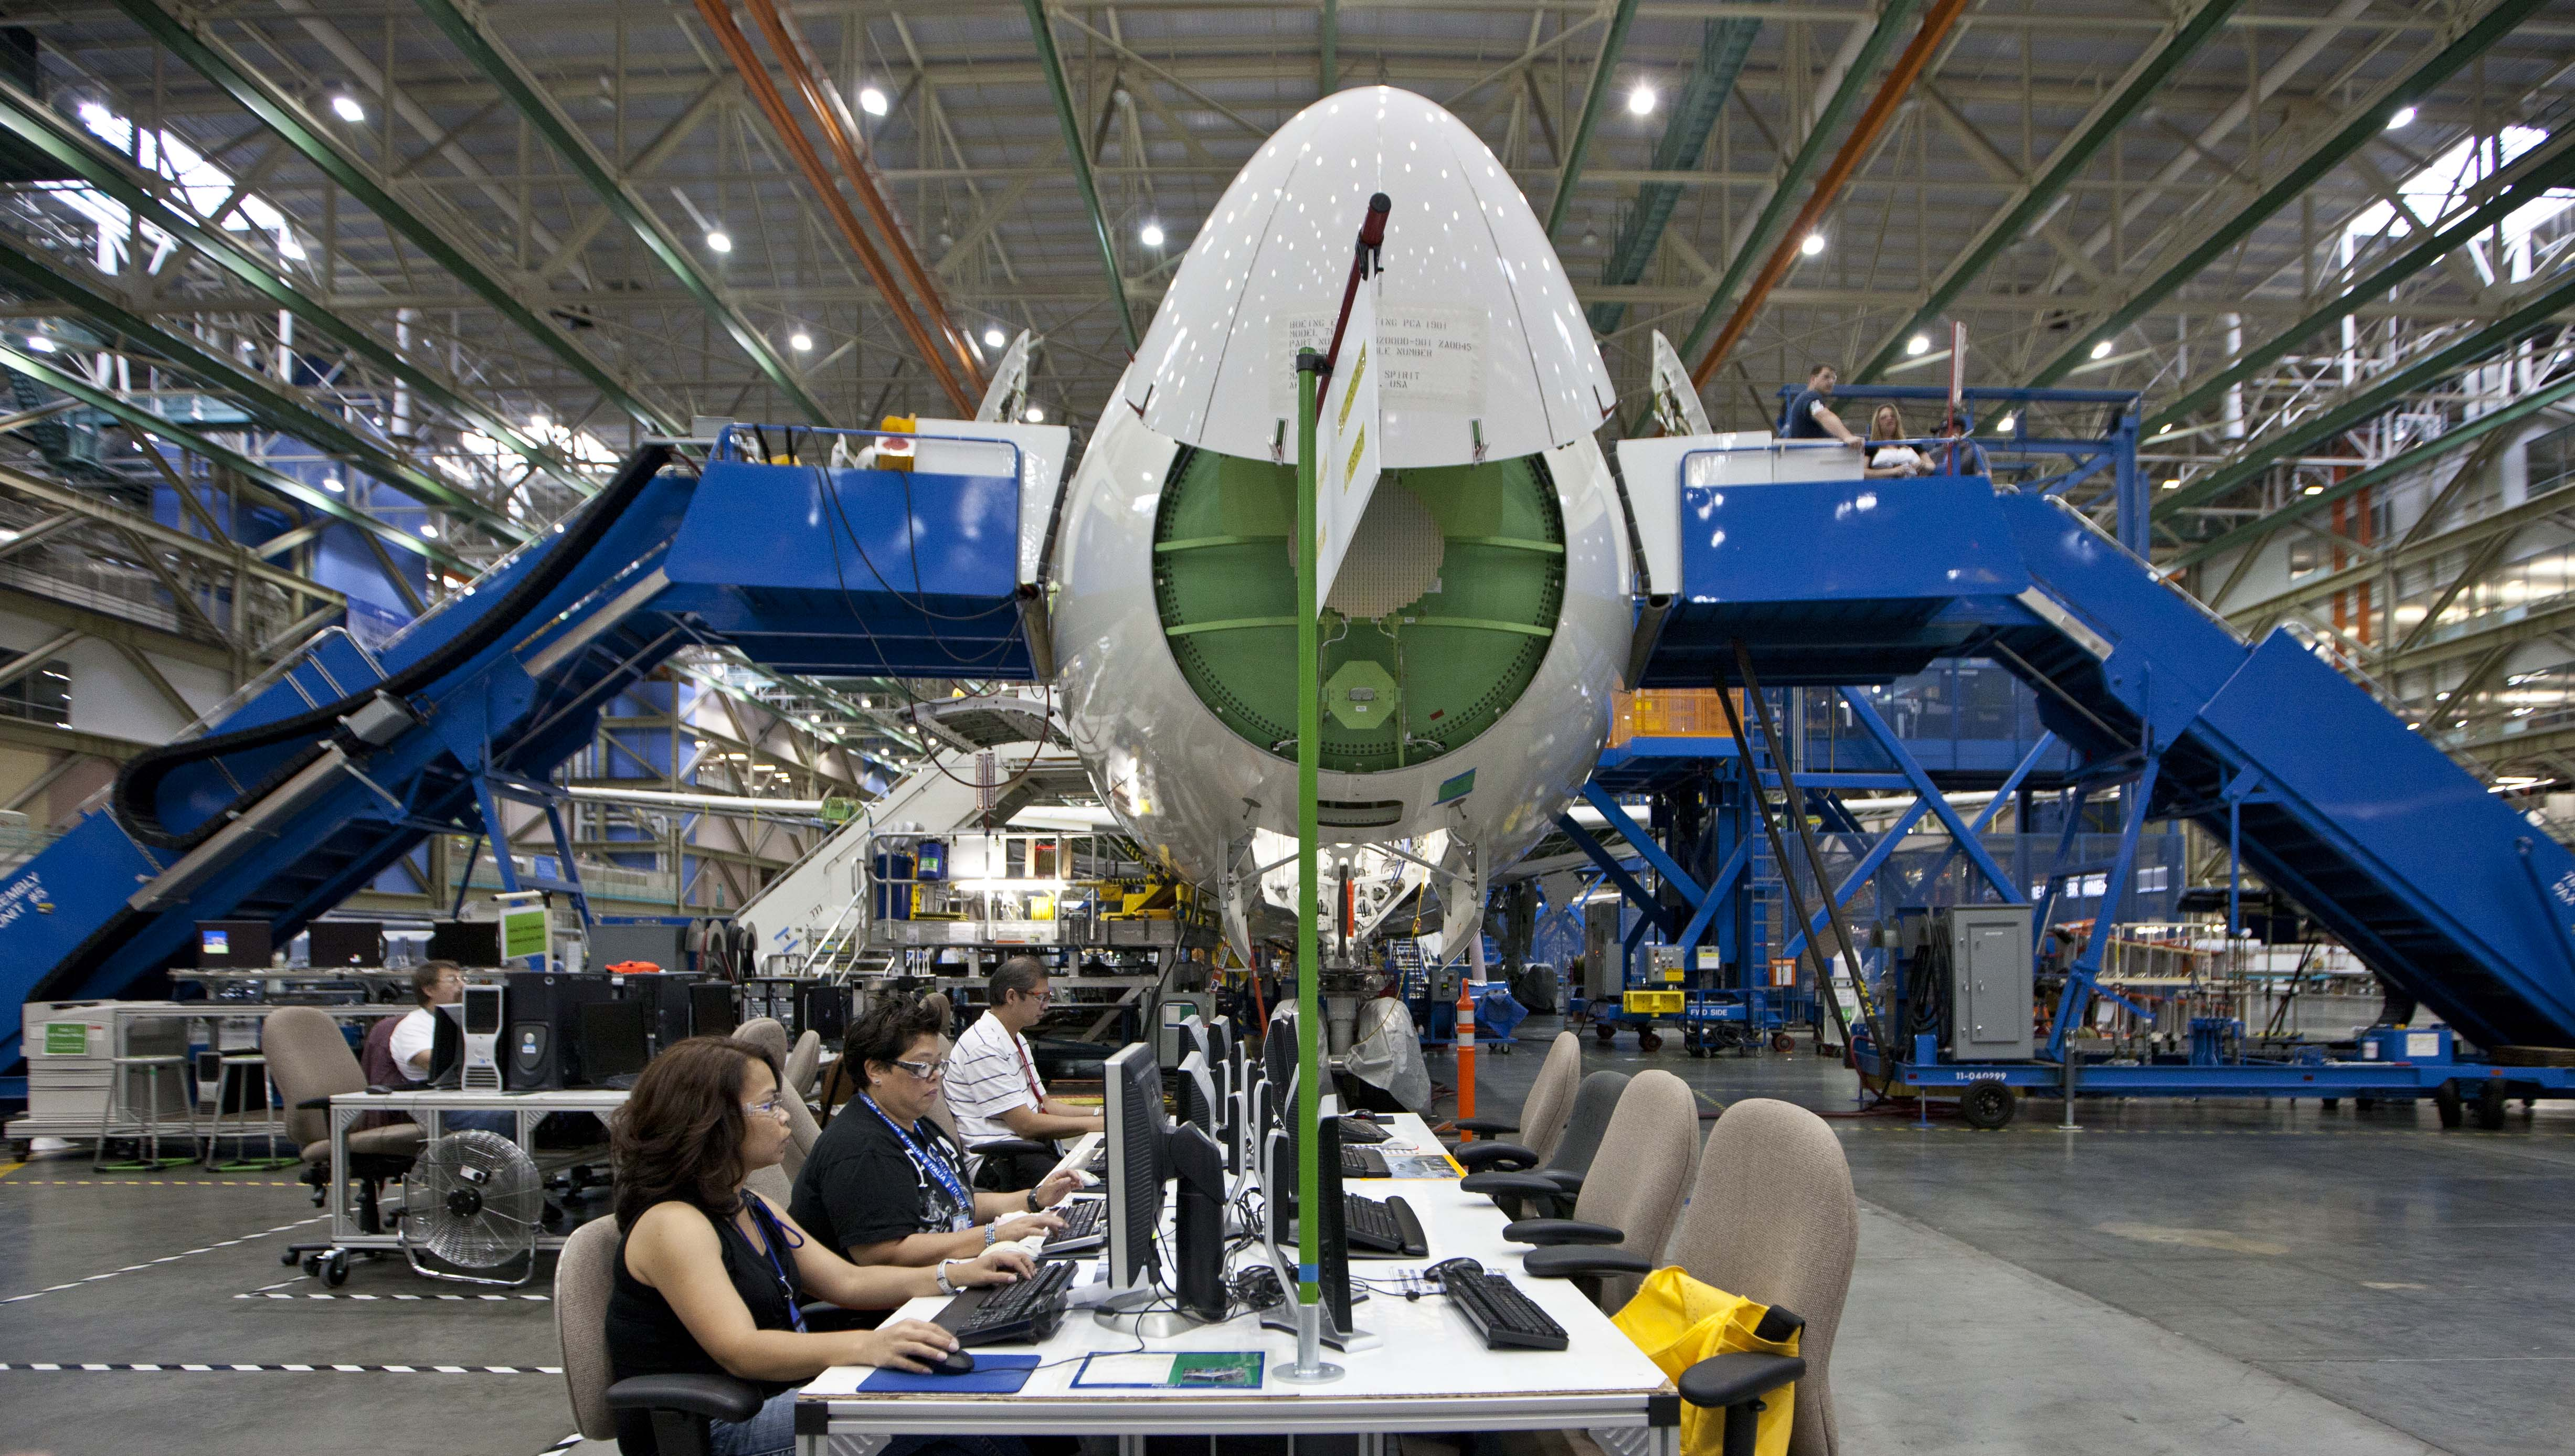 Boeing employment in Washington passes 80,000 | The